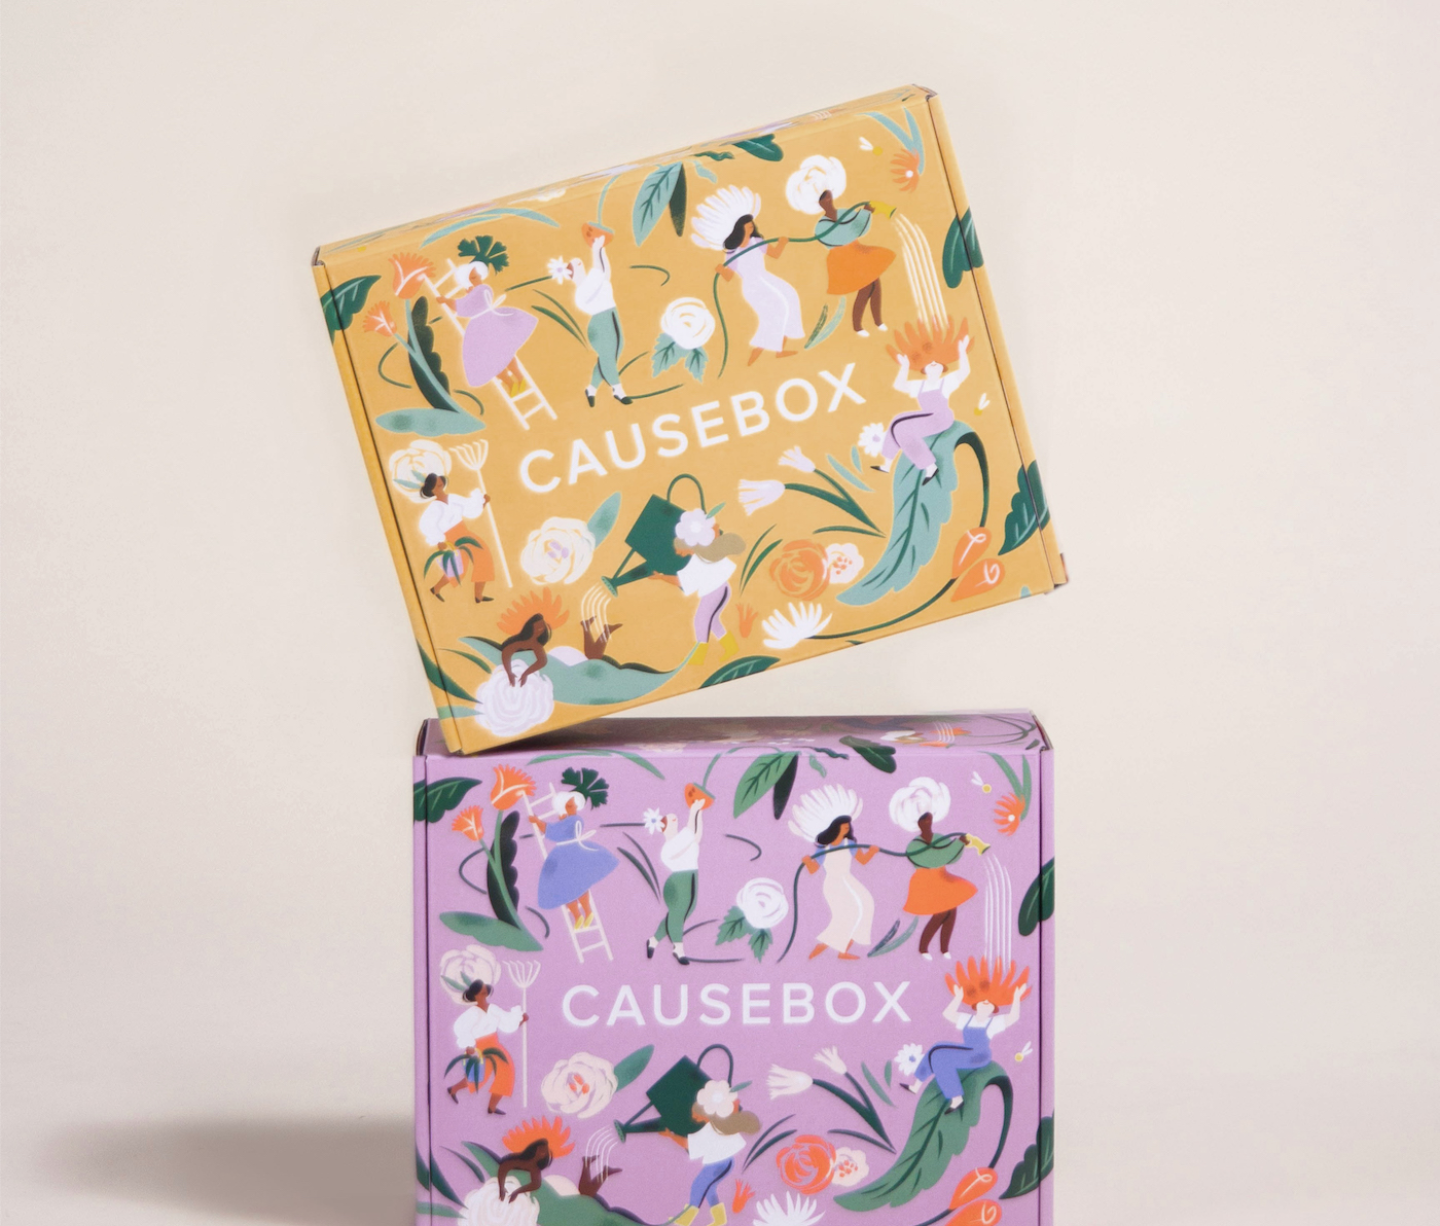 CAUSEBOX Spring Welcome Box – New Choice Add-On Avaliable Now